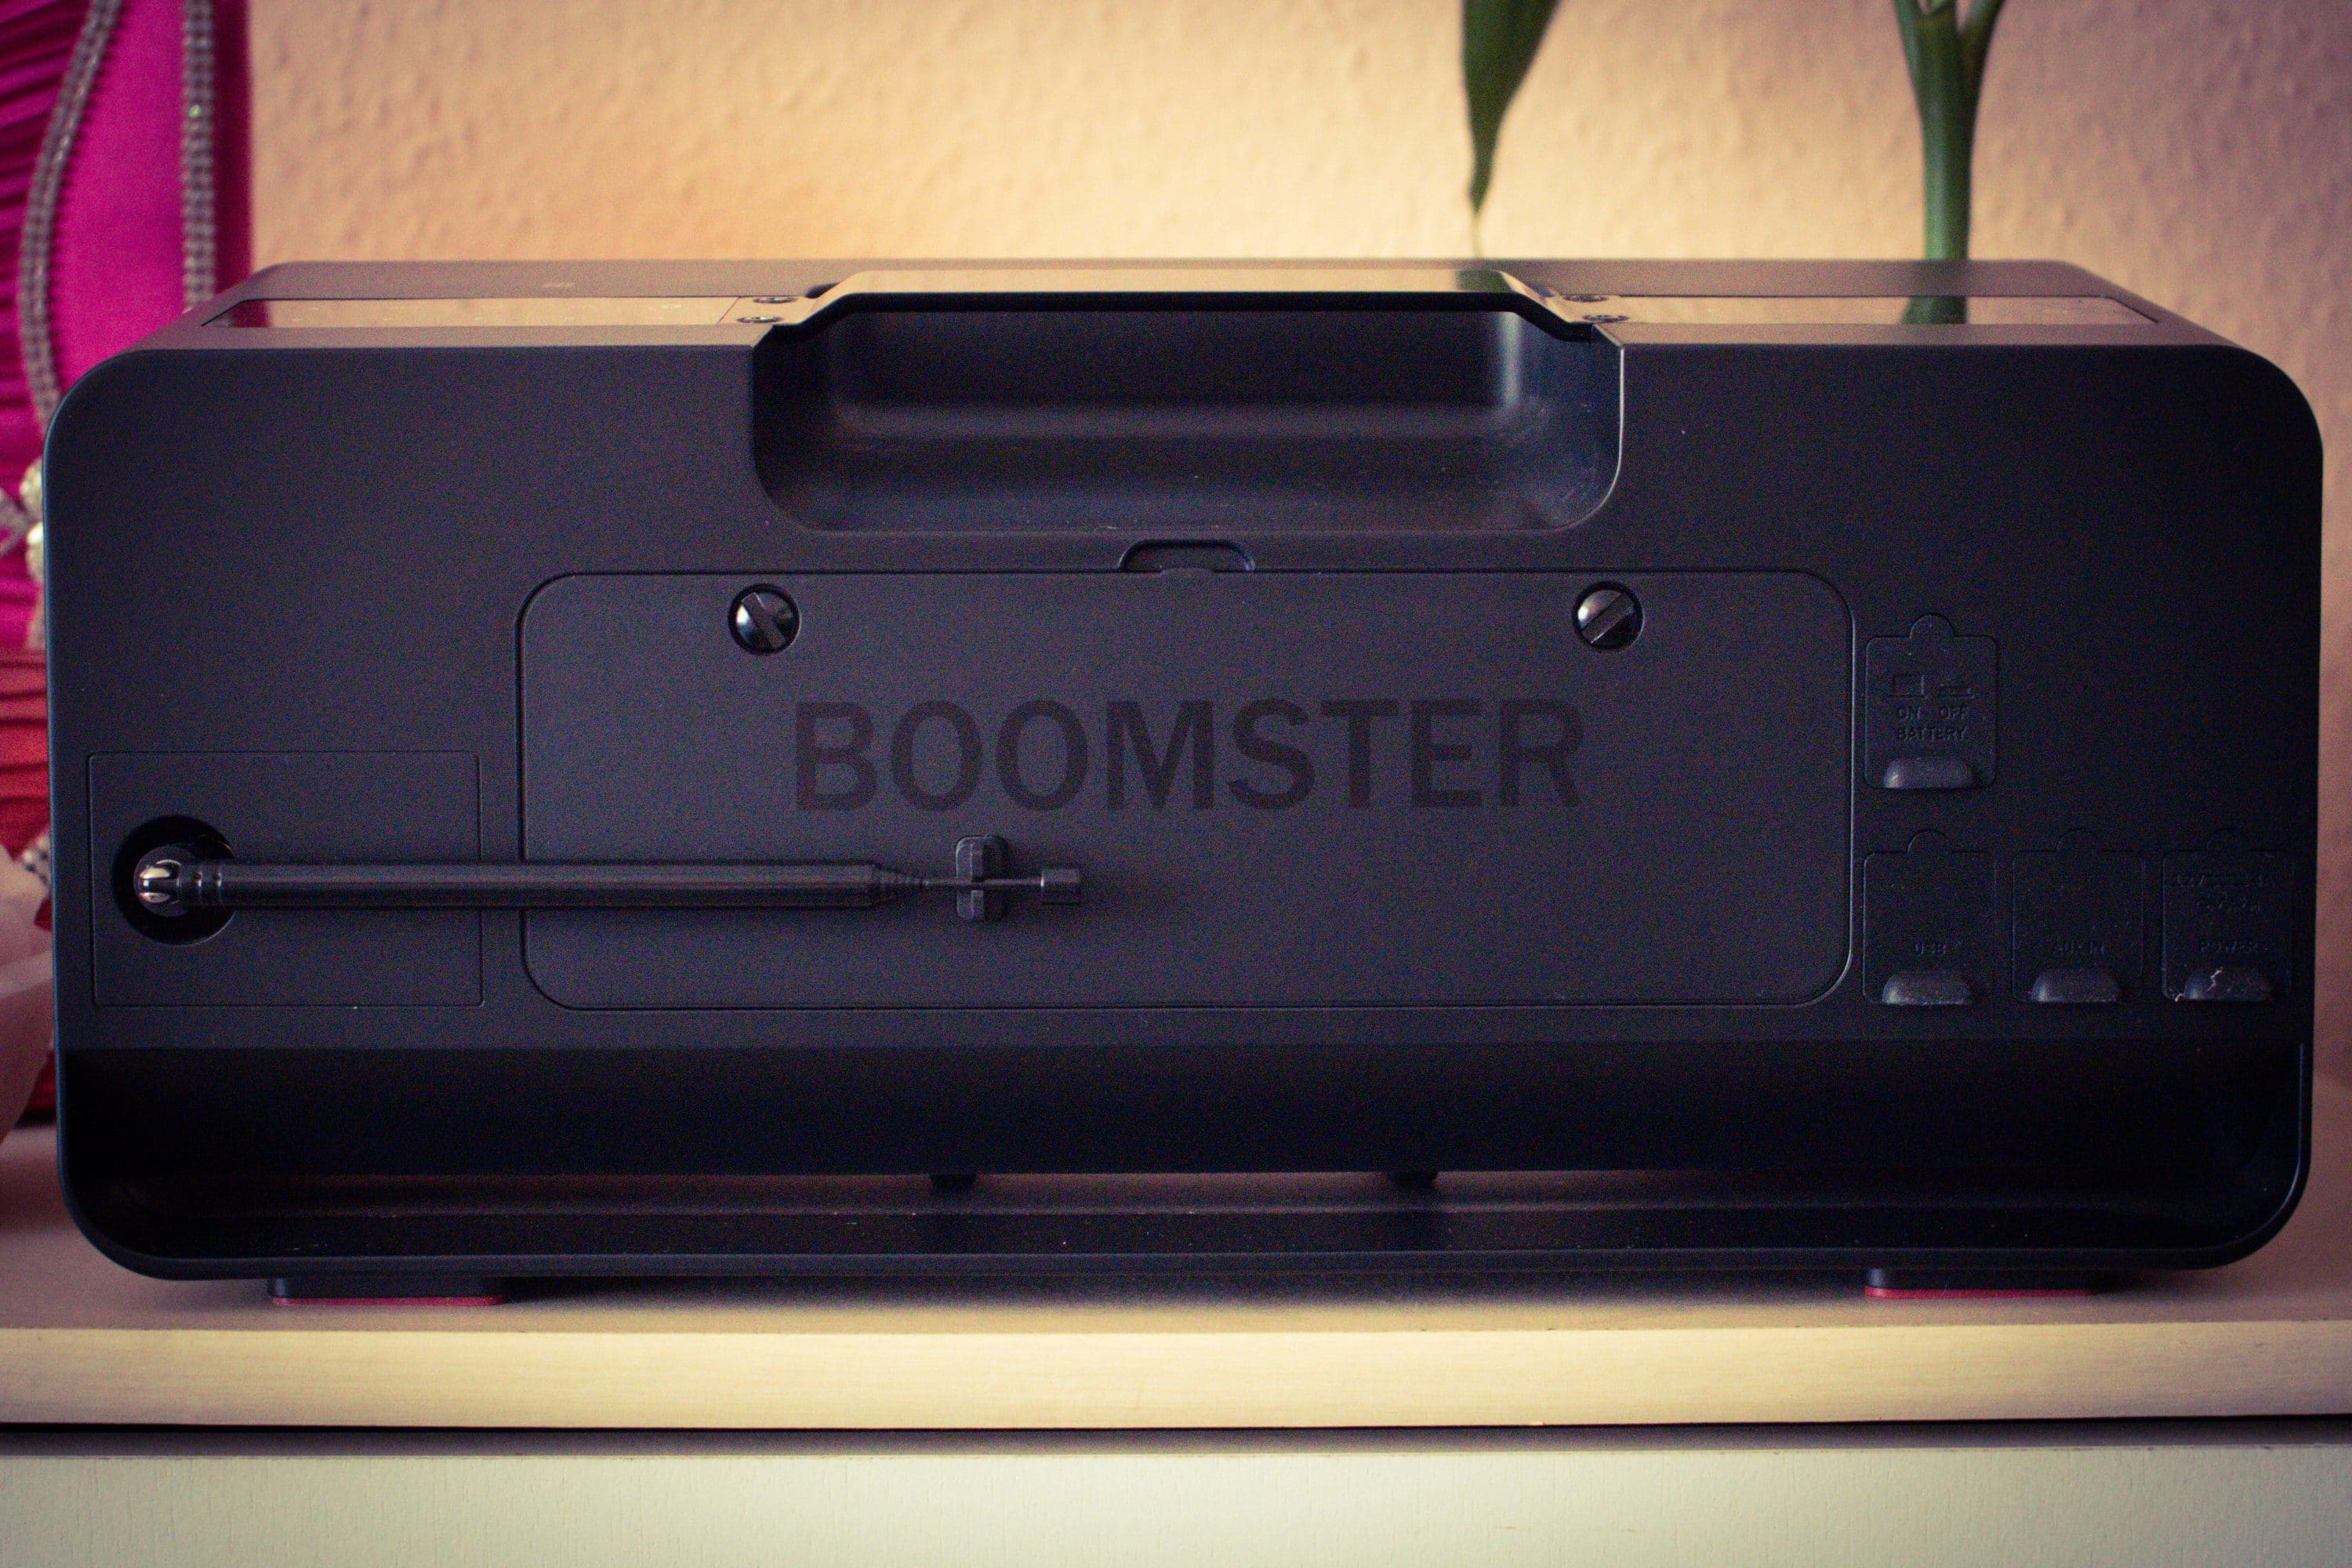 Teufel Boomster Review The Riot Maker For On The Road